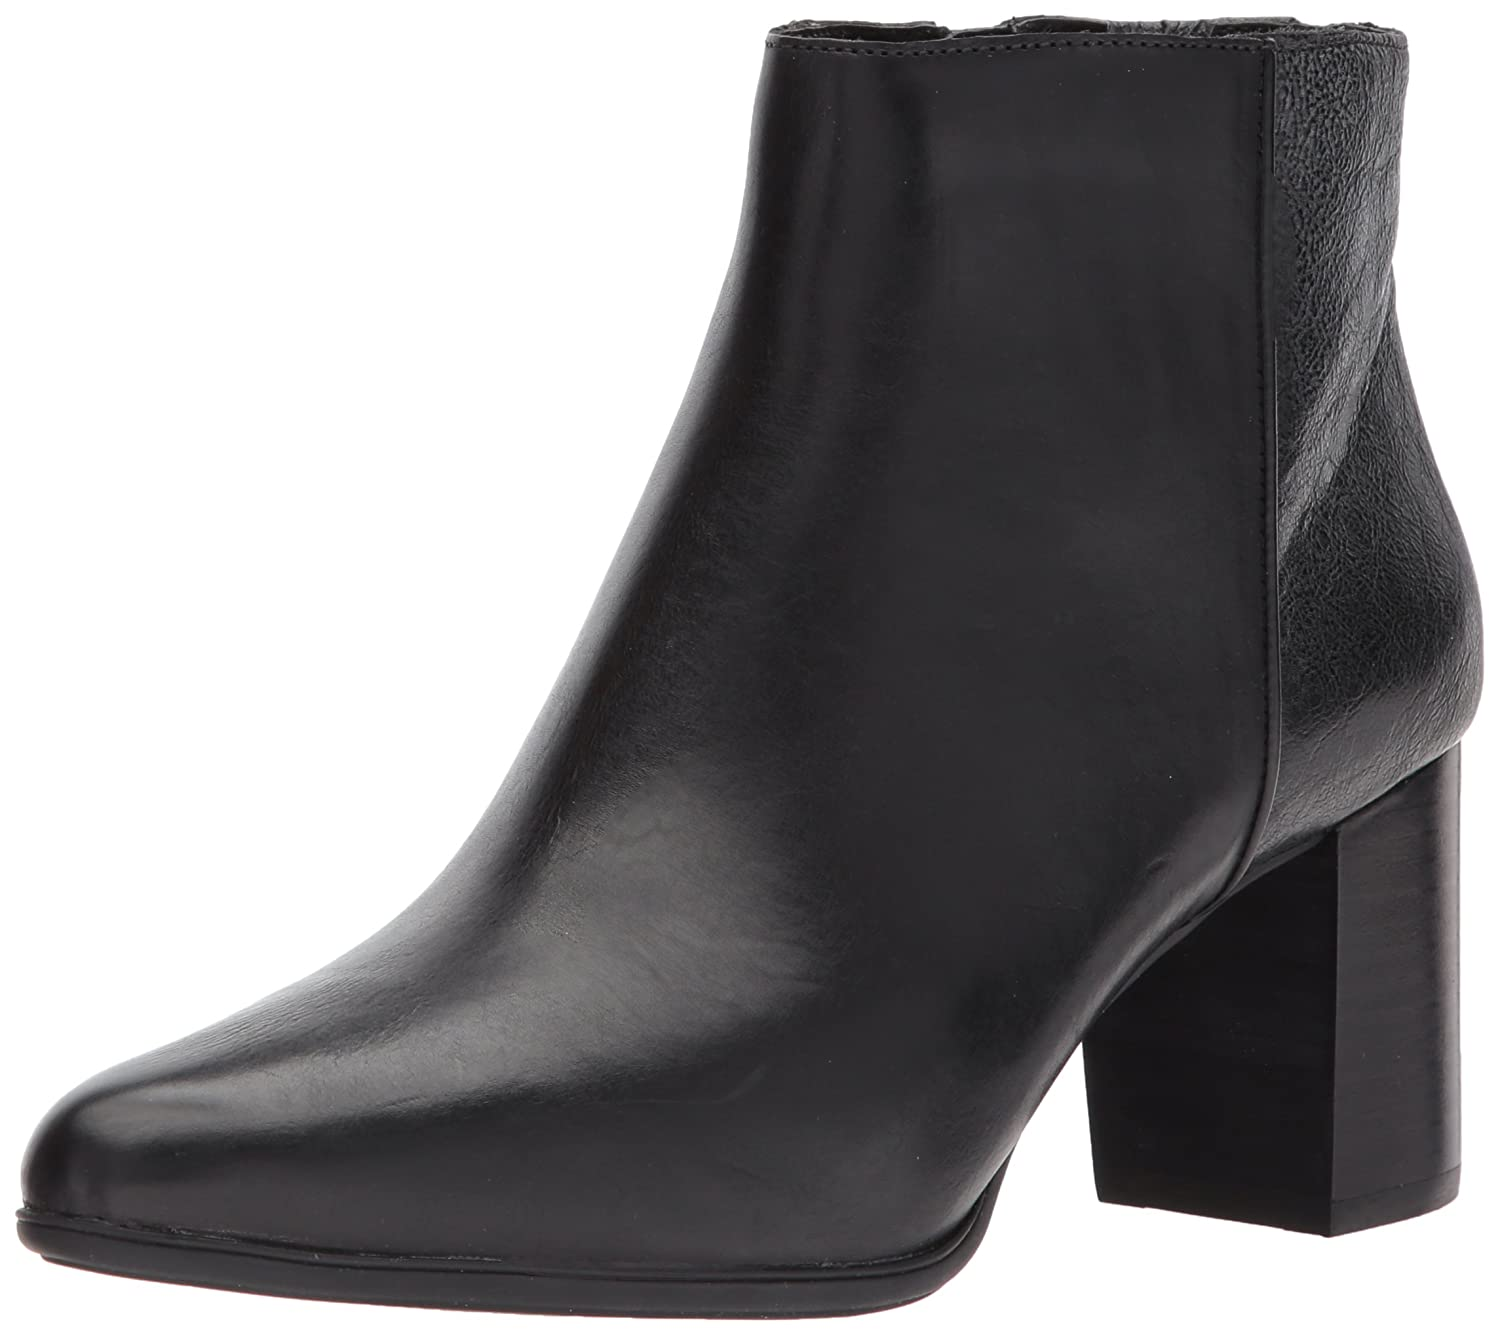 Rockport Women's Total Motion Lynix Bootie Boot B06VWVW6FH 5 W US|Black